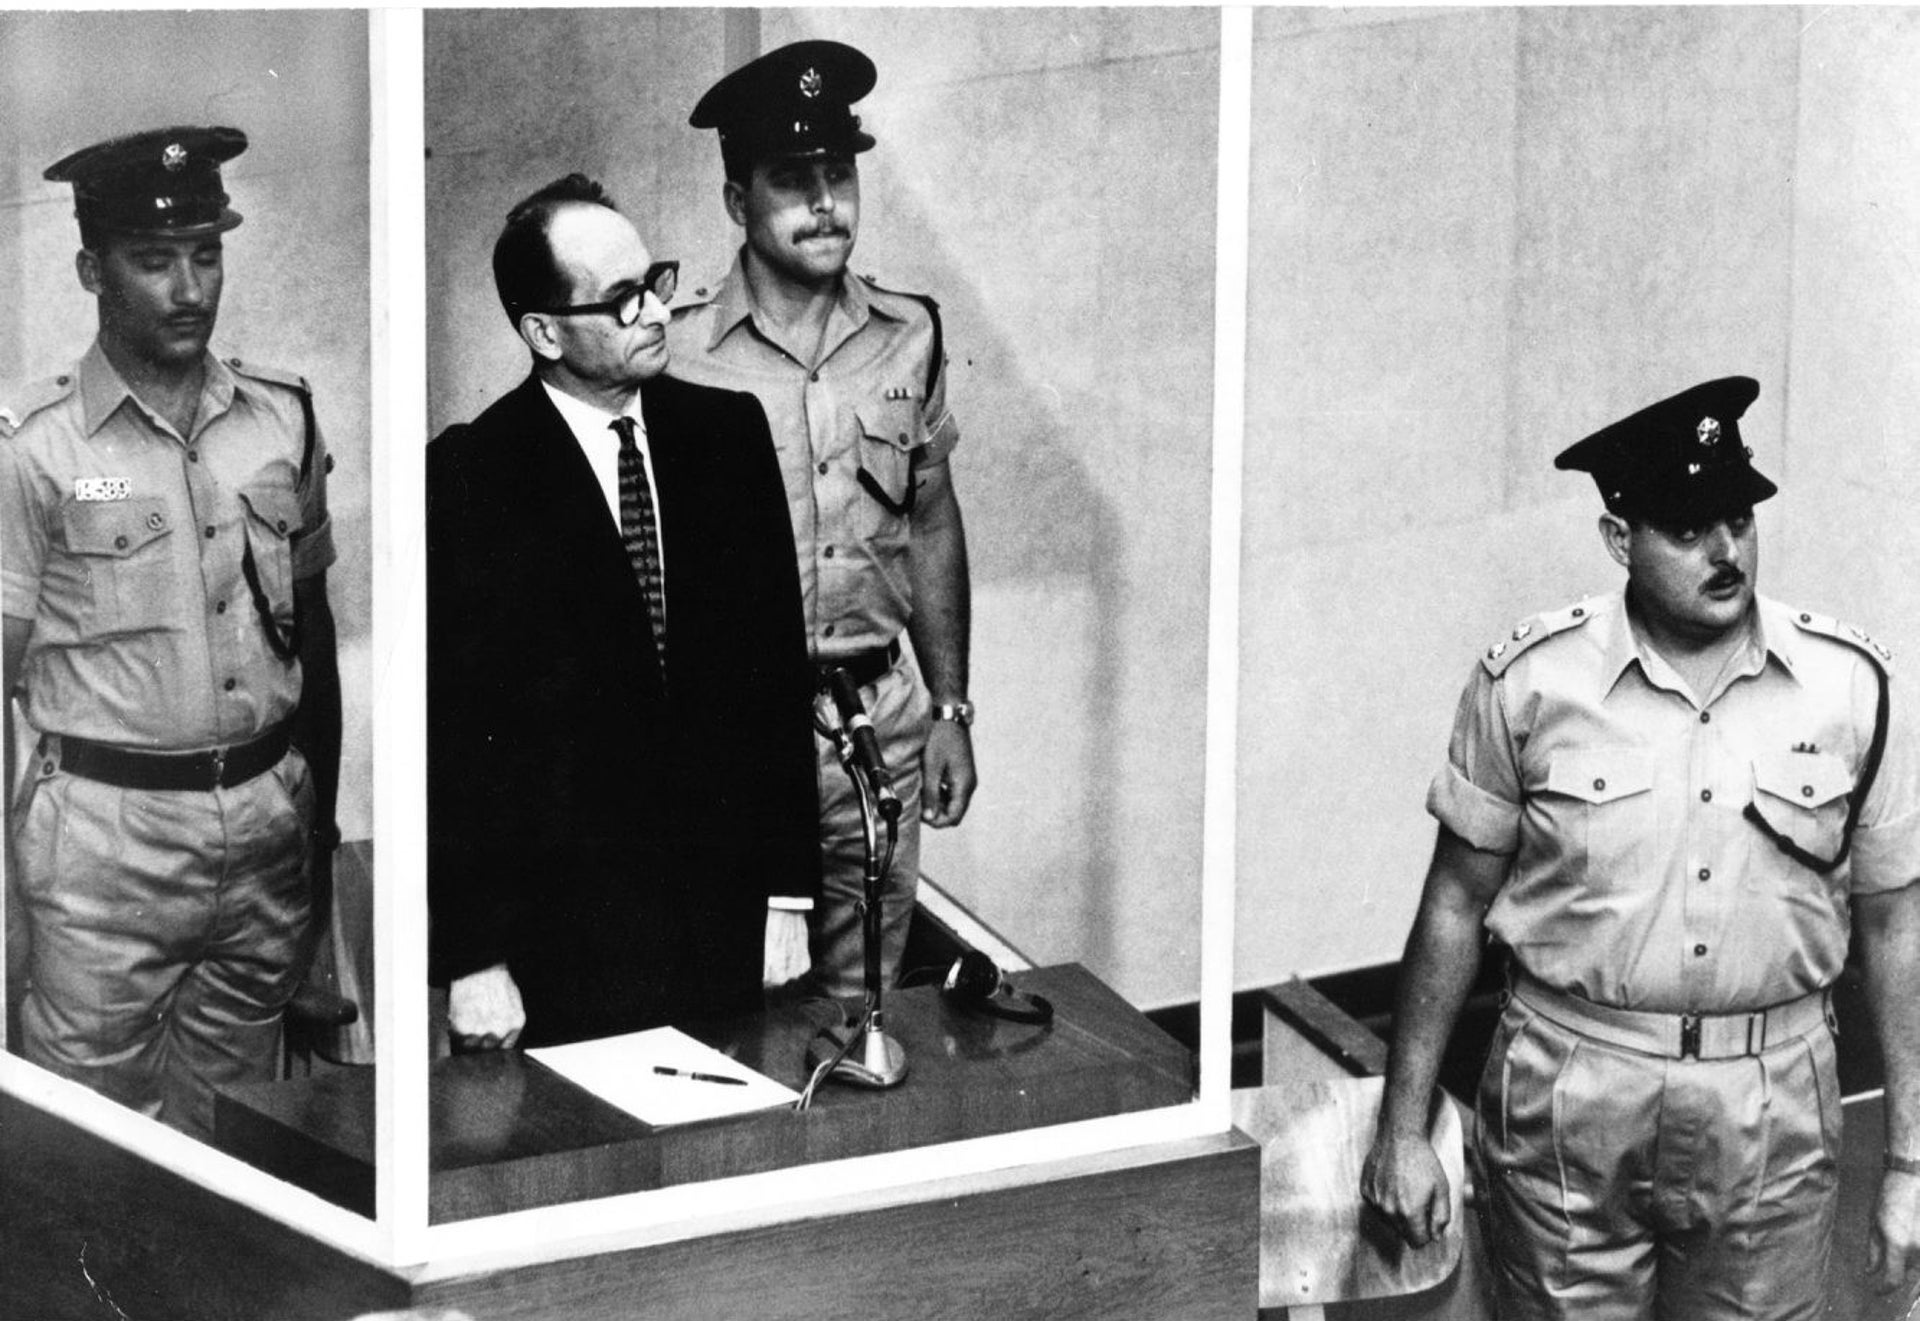 Adolf Eichmann being brought to justice in Israel in 1961